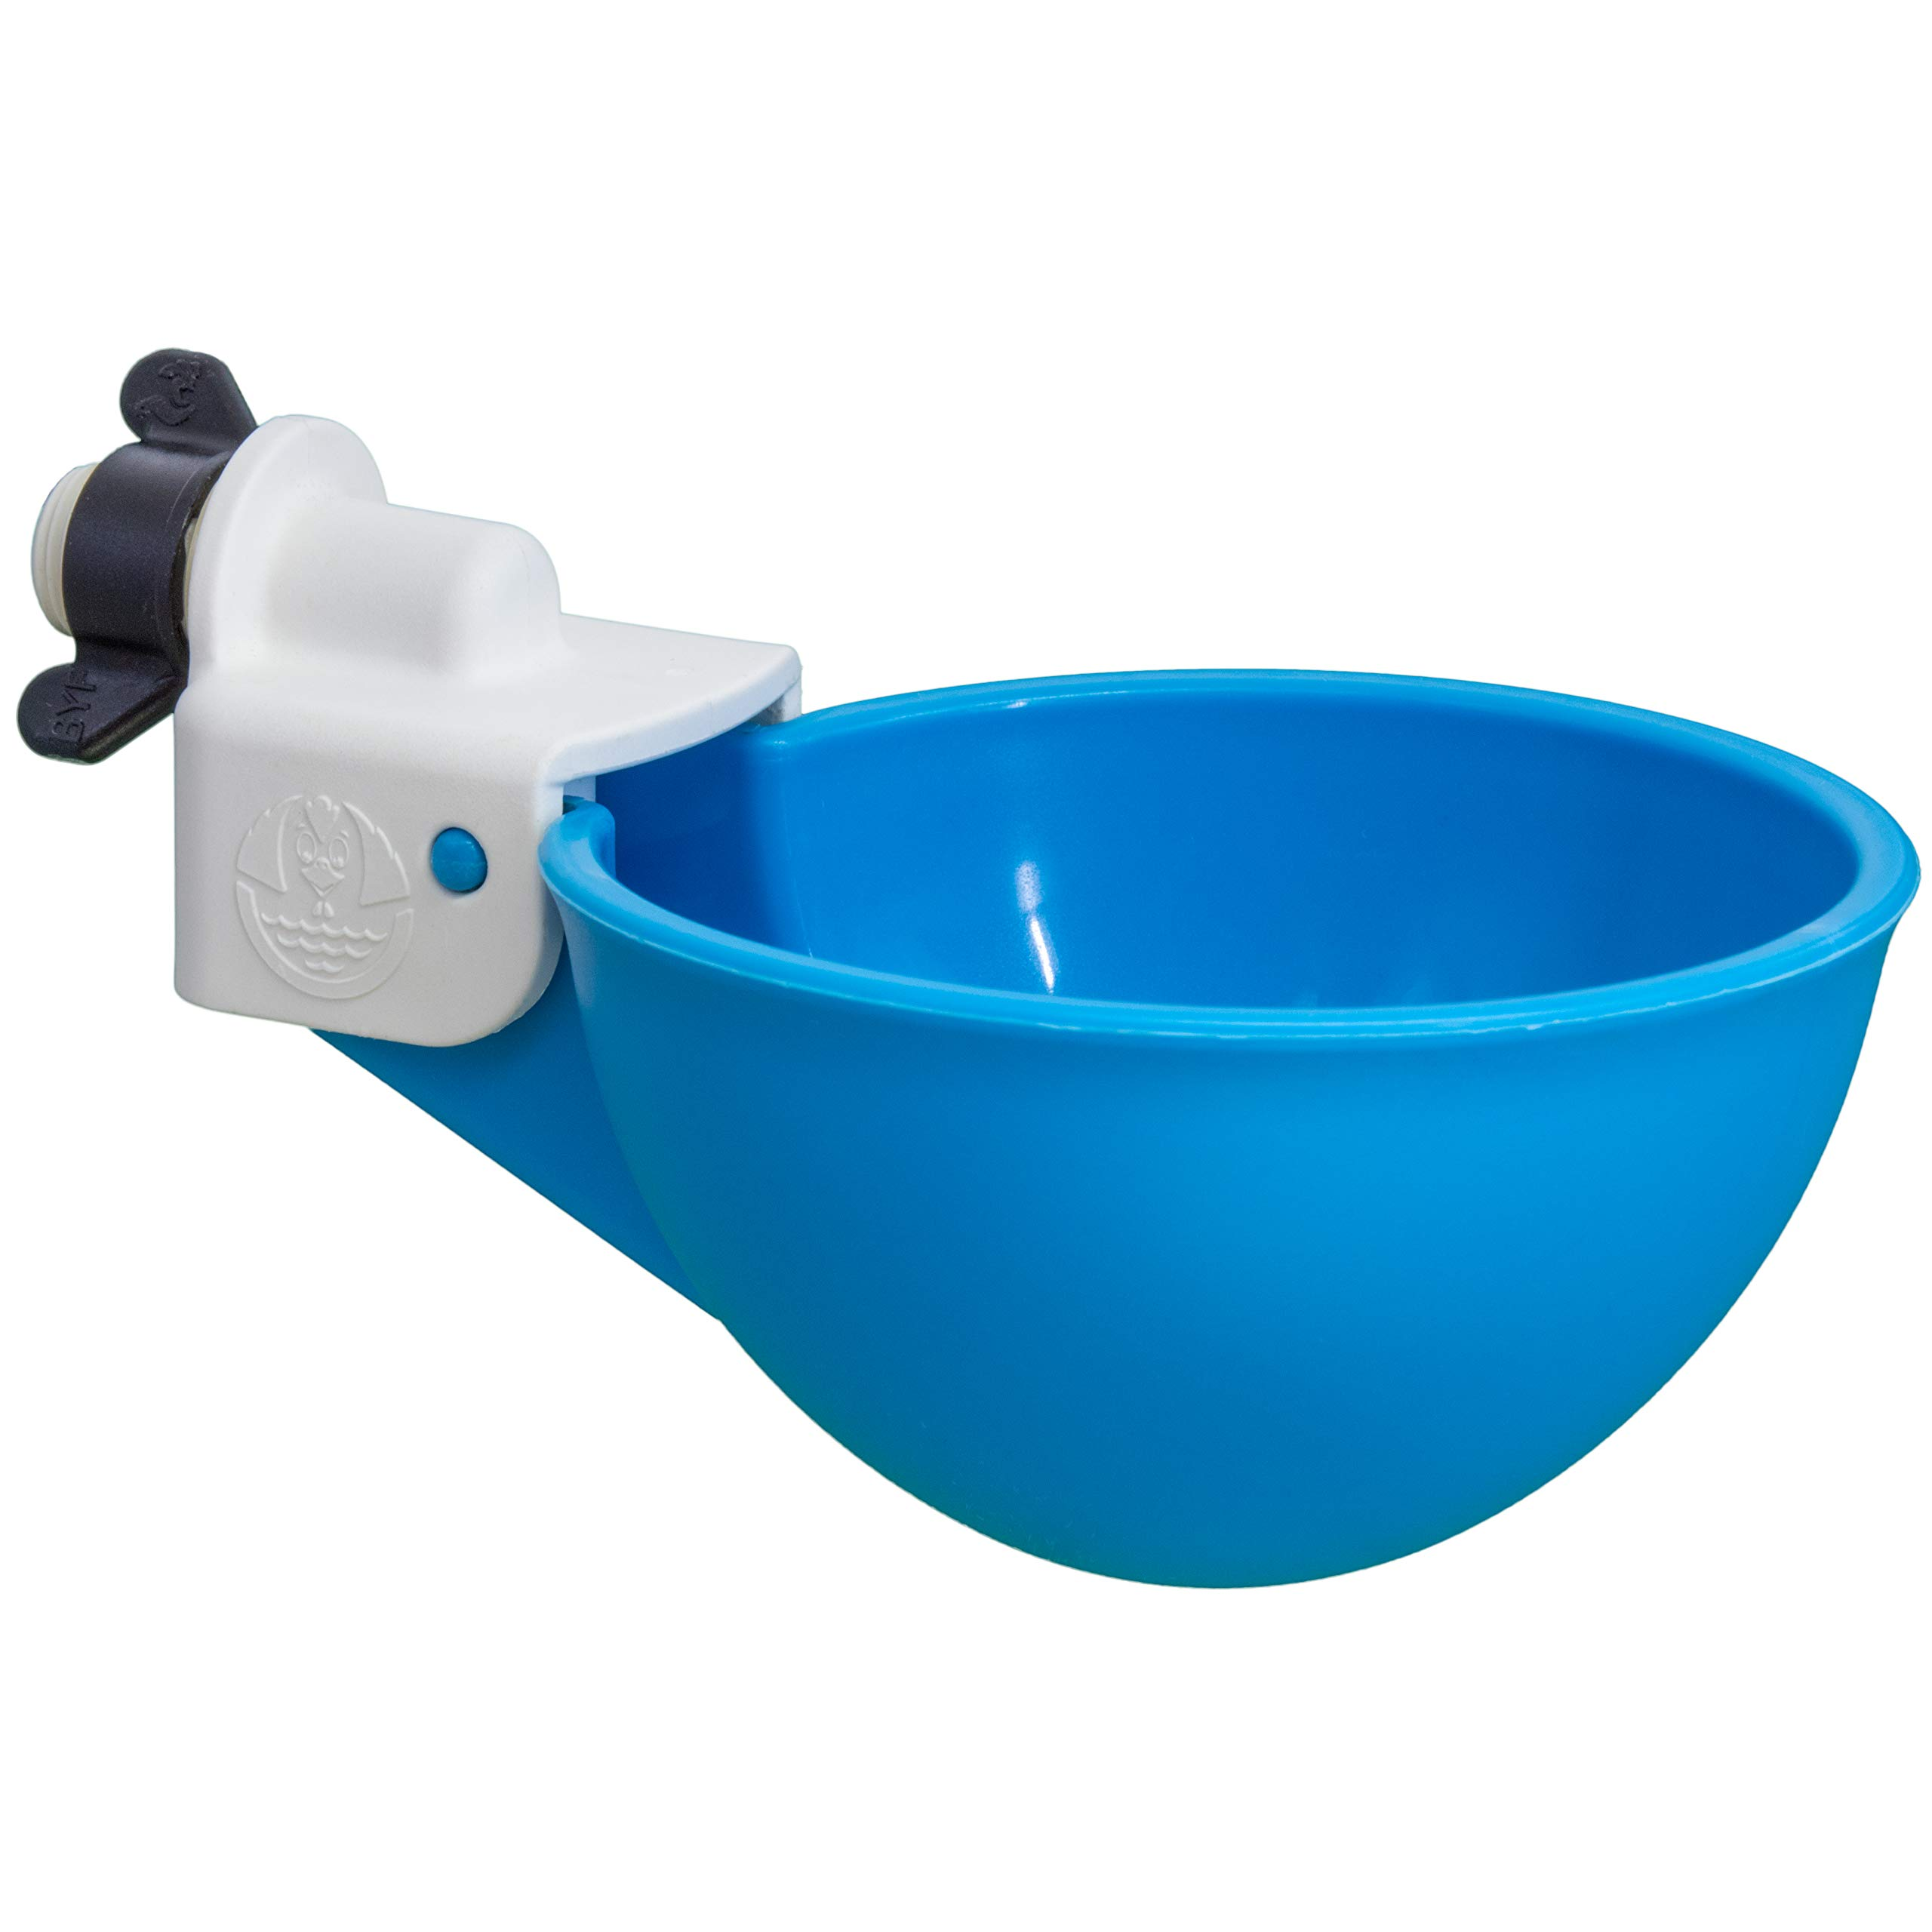 (4 Pack) Oasis Chicken Watering Cups   Drill Bit and Hardware Included!   Fully Automatic Poultry Waterers   No Floats or Tabs to Peck!   Qty: 4 (Blue) by Backyard Flock